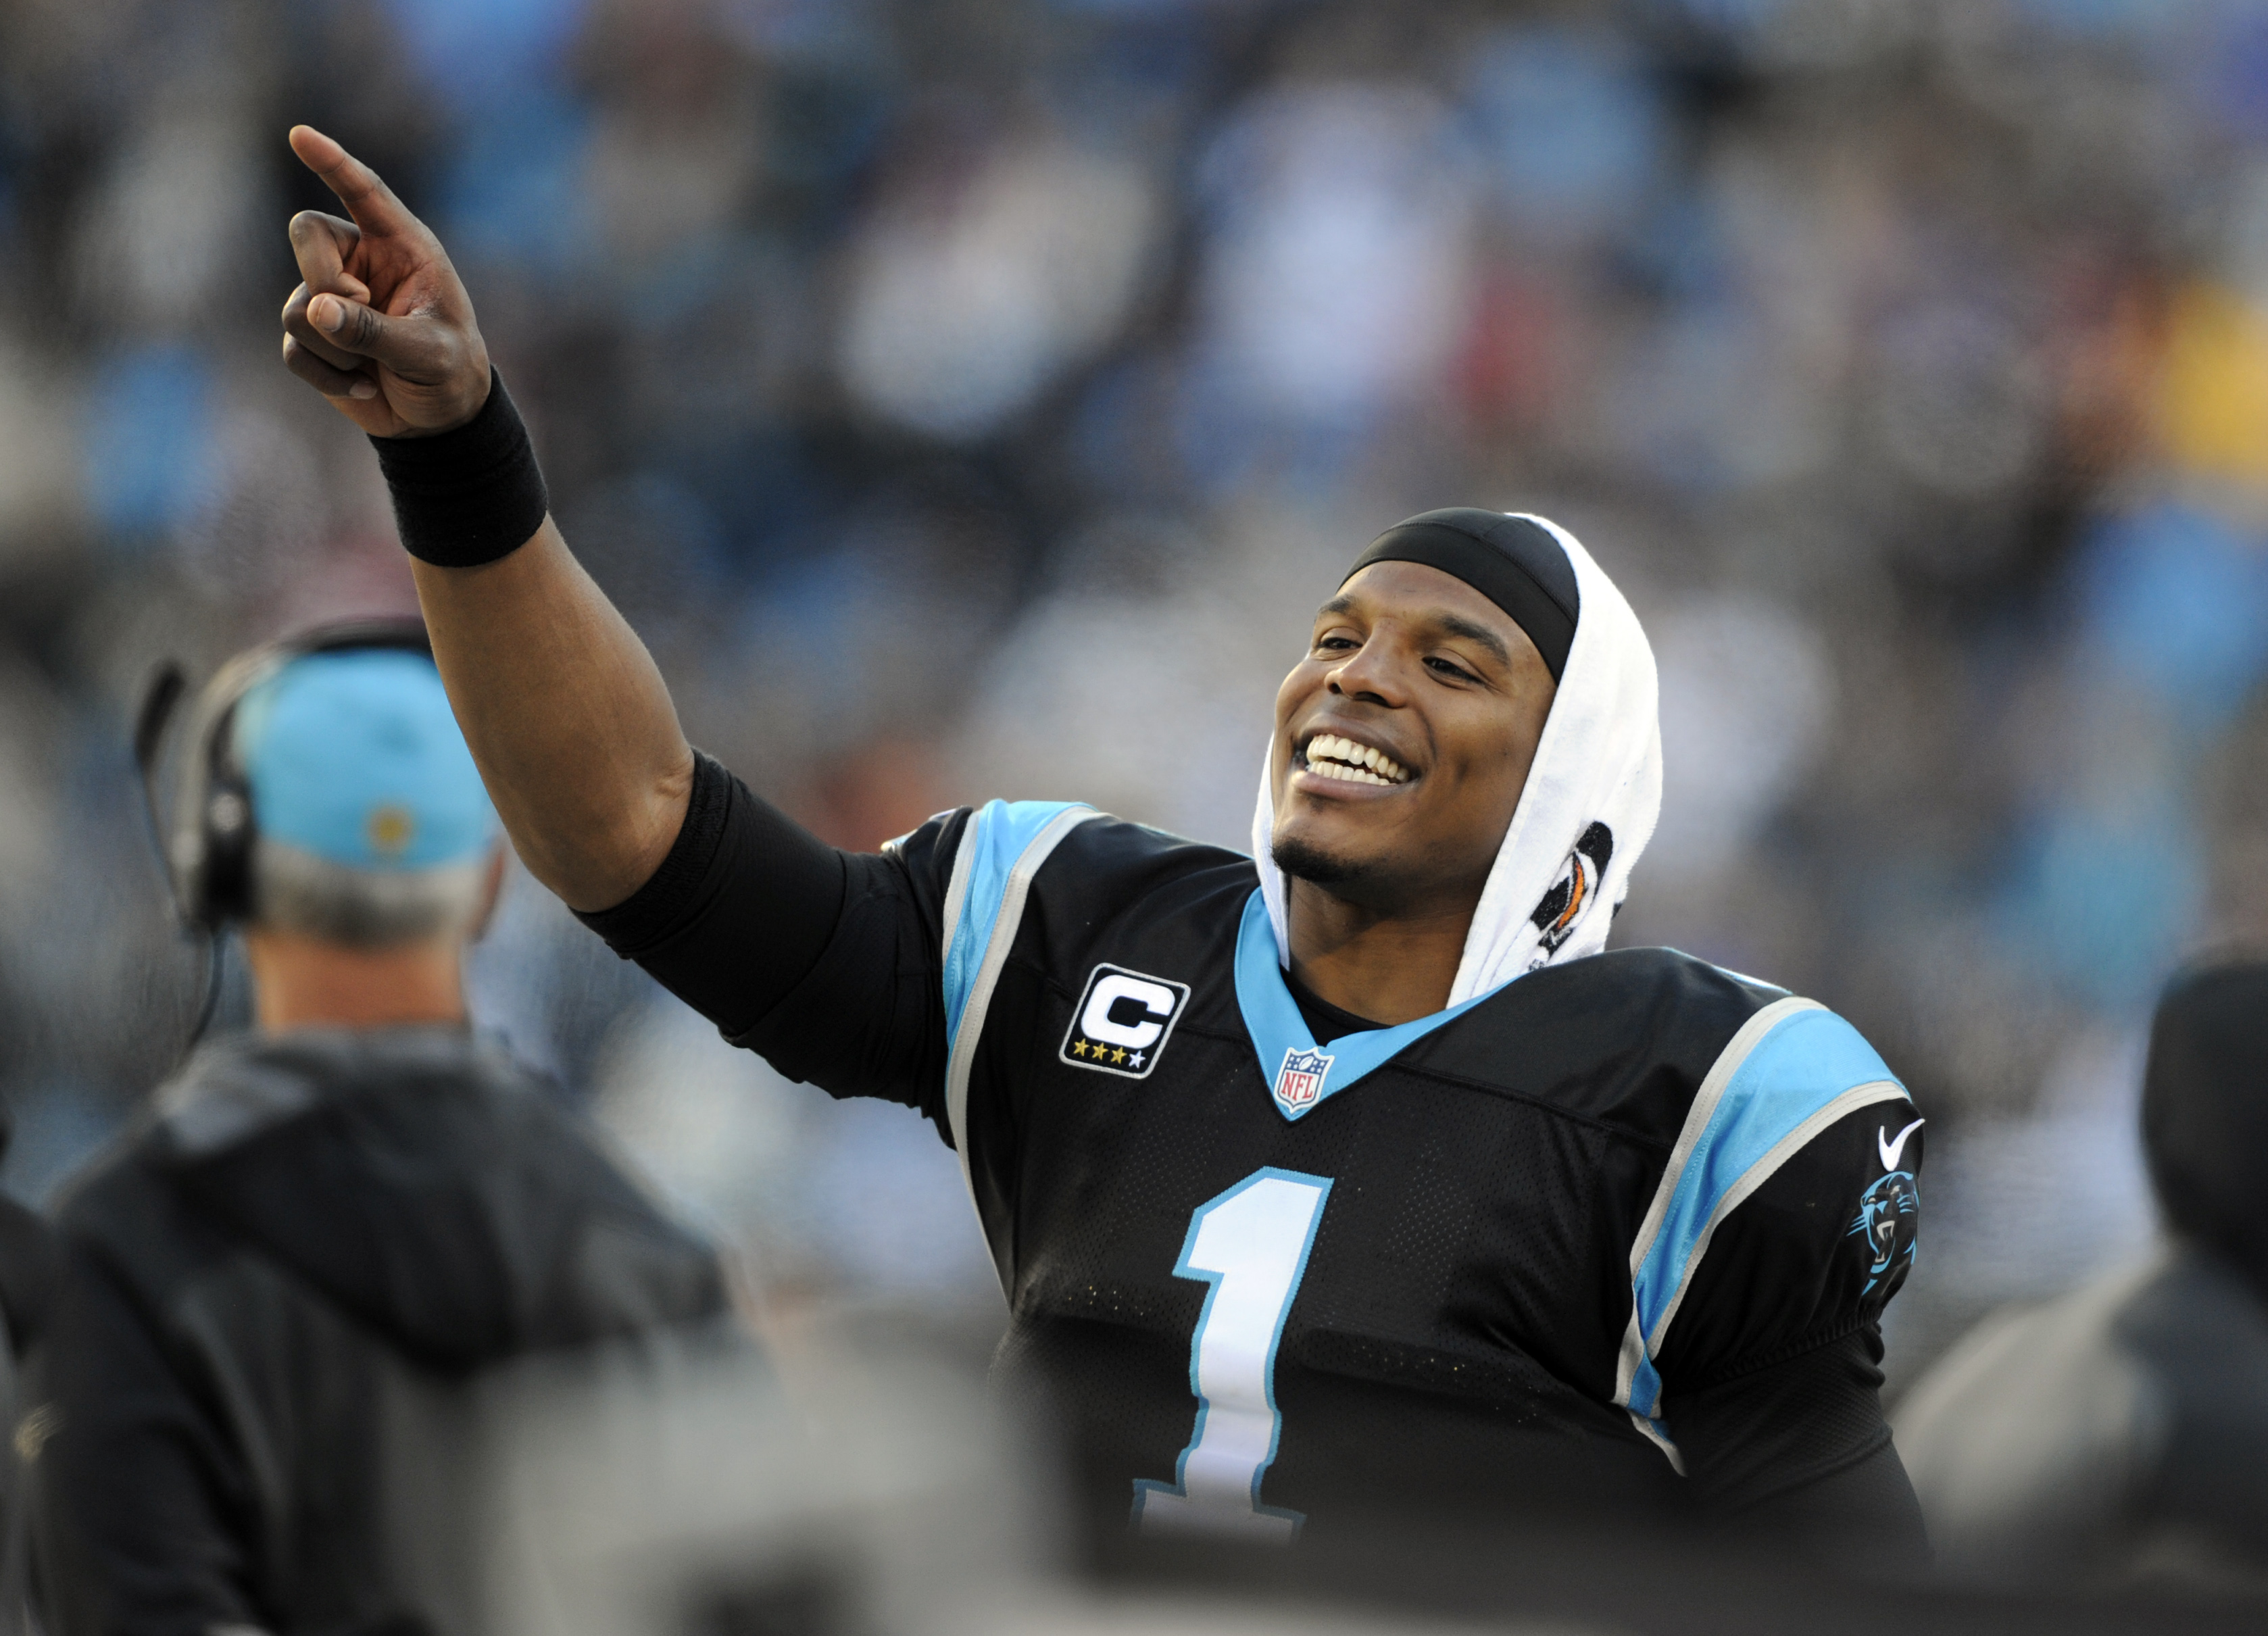 Carolina Panthers' Cam Newton (1) celebrates on the sidelines in the second half of an NFL football game against the Washington Redskins in Charlotte, N.C., Sunday, Nov. 22, 2015. The Panthers won 44-16. (AP Photo/Mike McCarn)